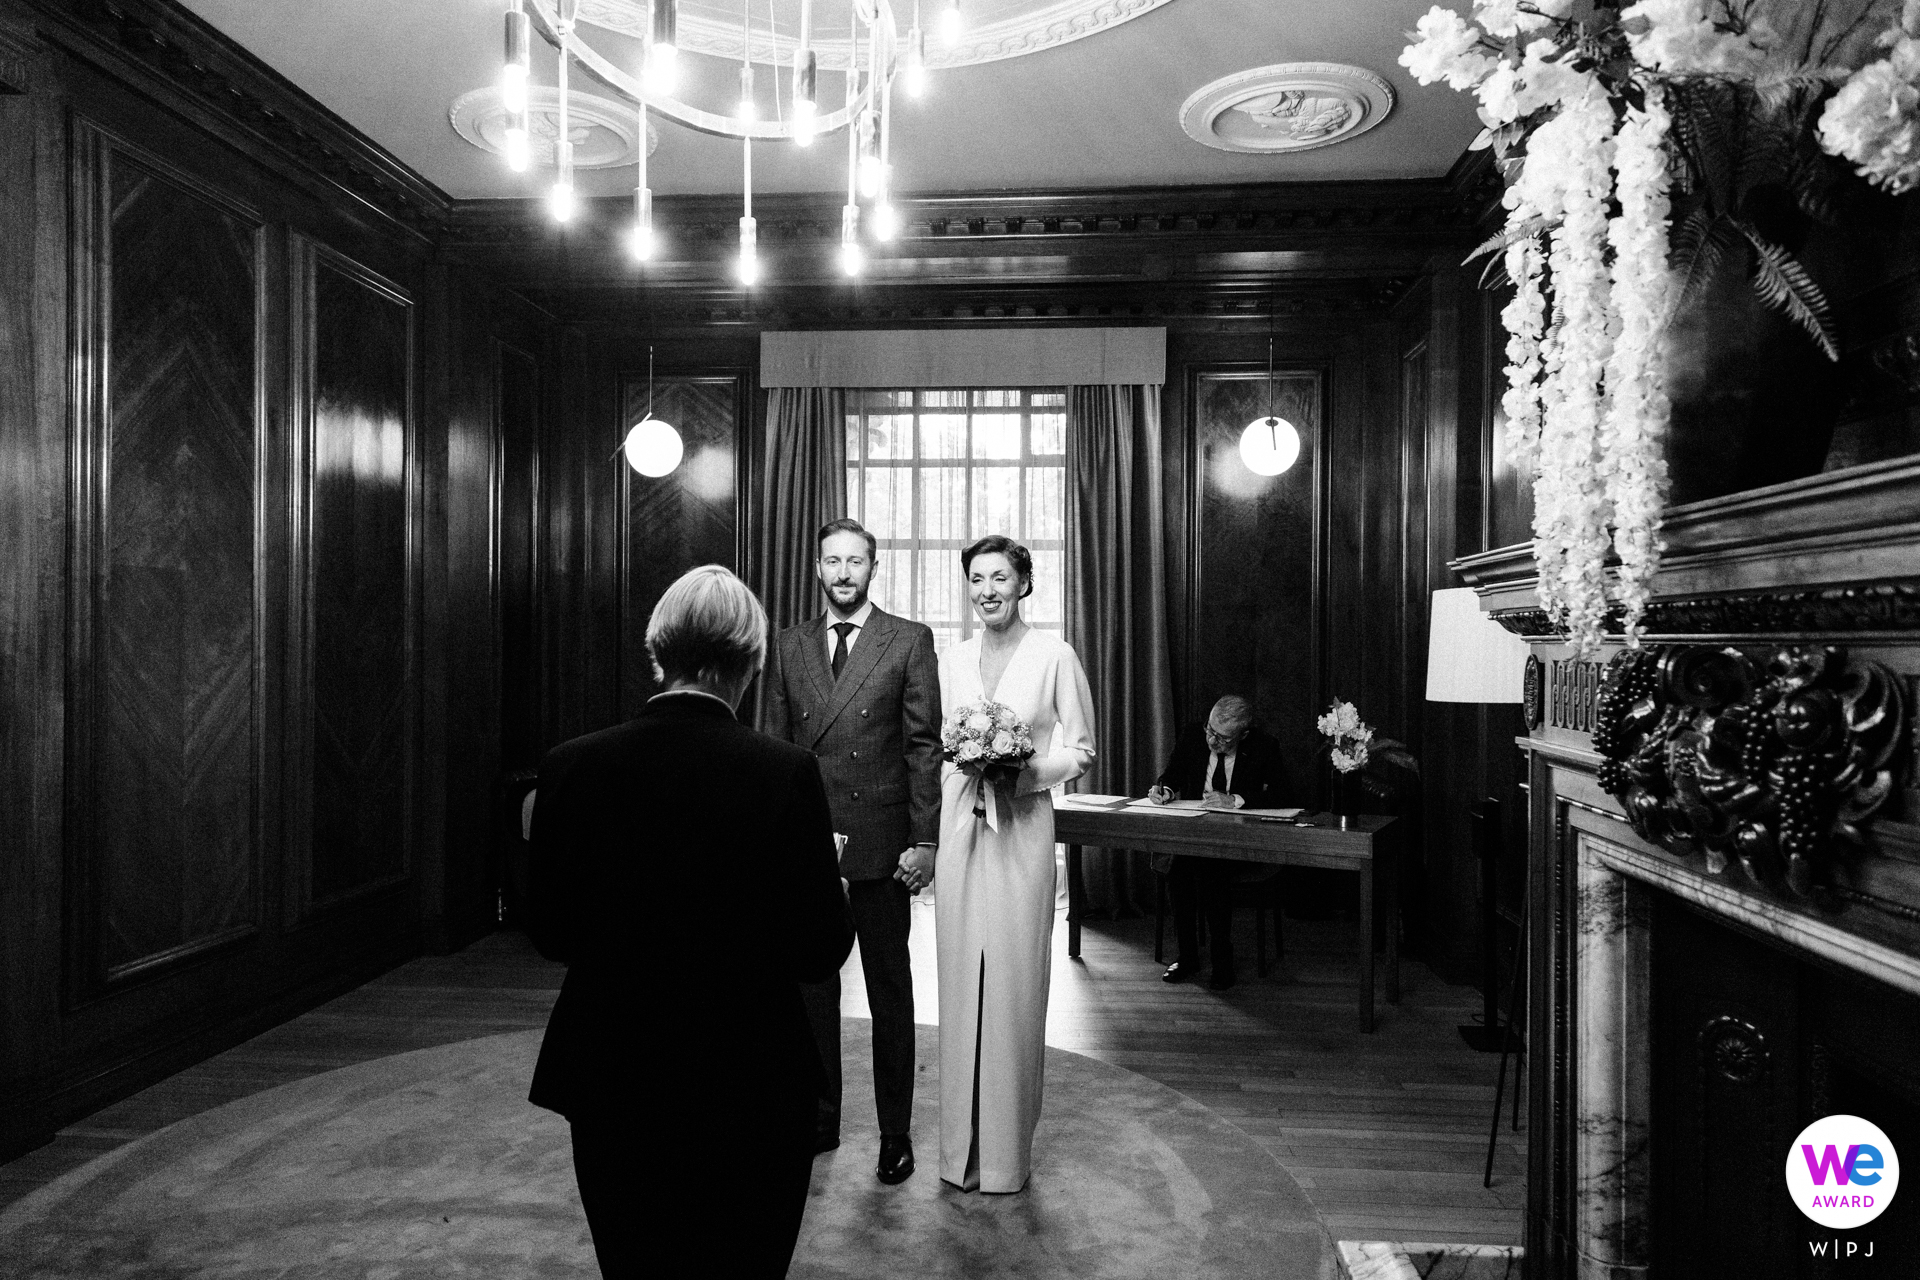 Central London Elopement Photographer | The bride and groom, during the ceremony at the Old Marylebone Town Hall in London